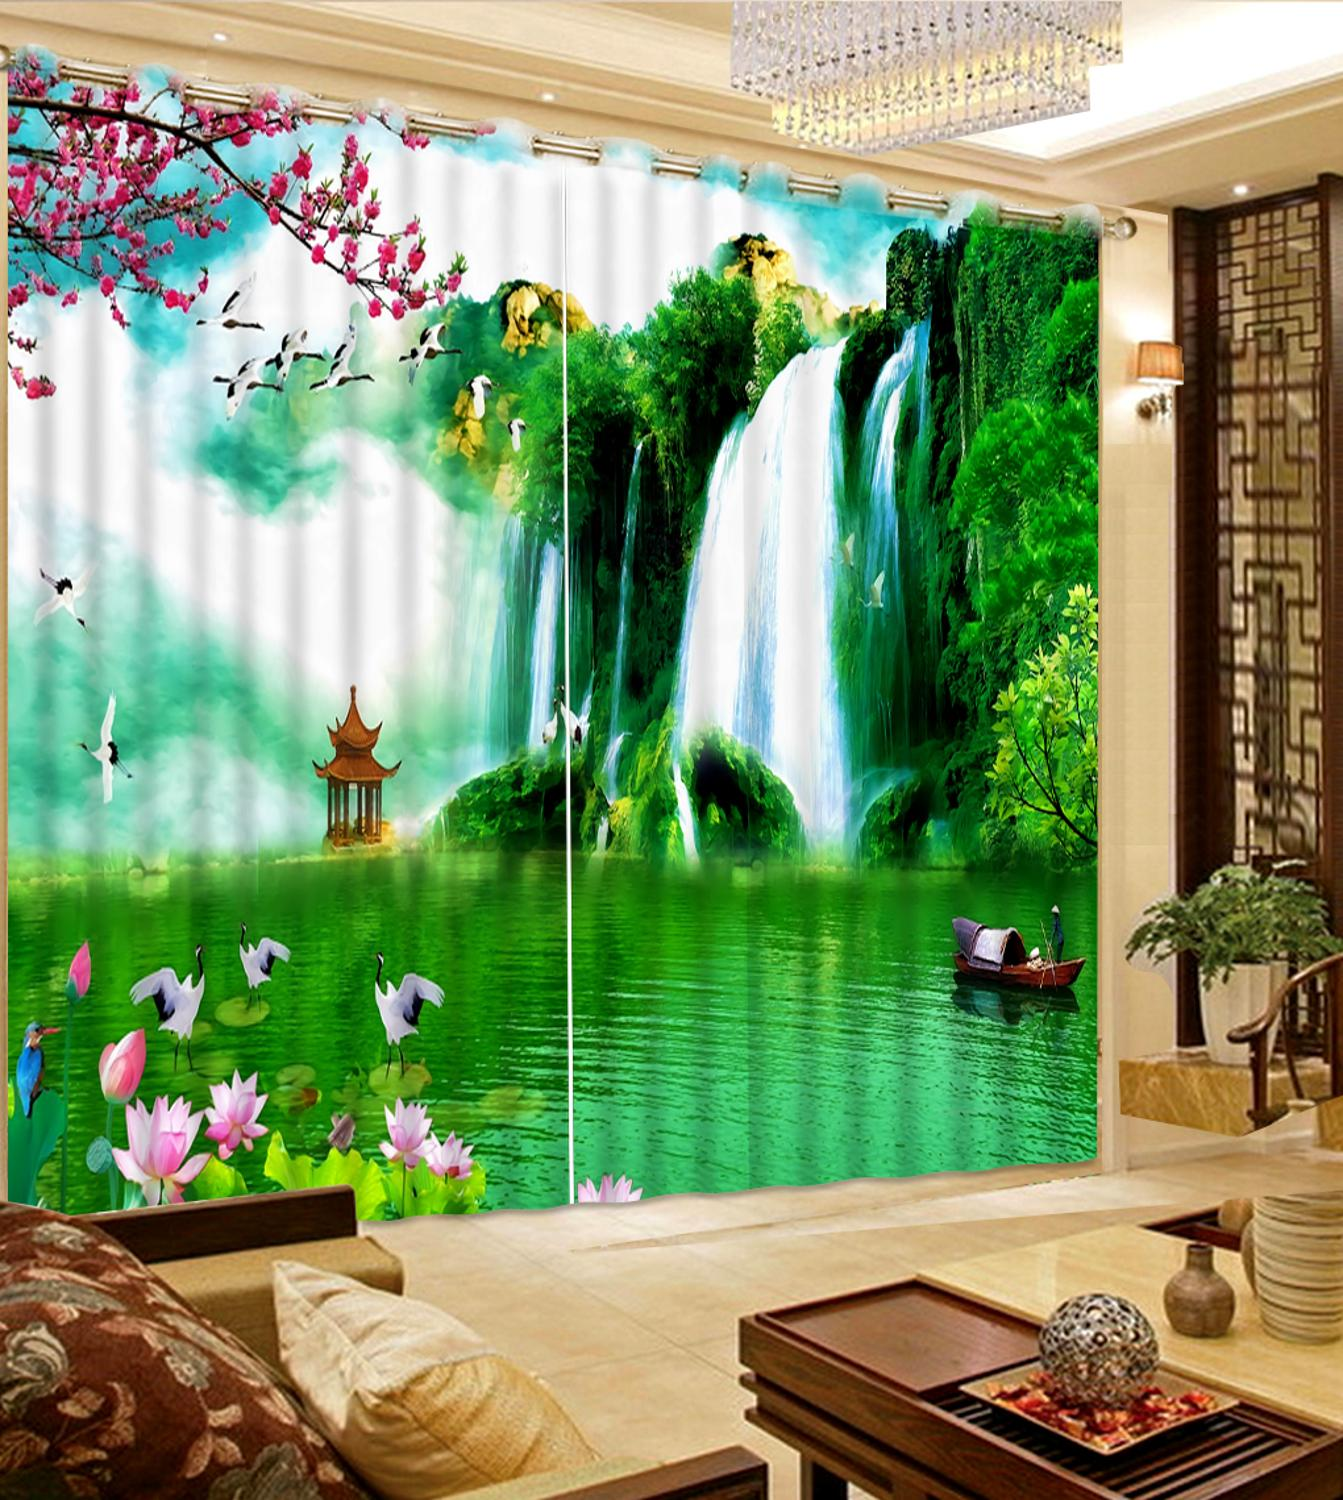 customize landscape Waterfall windows curtains for living room bedroom high quality curtain modern window curtainscustomize landscape Waterfall windows curtains for living room bedroom high quality curtain modern window curtains